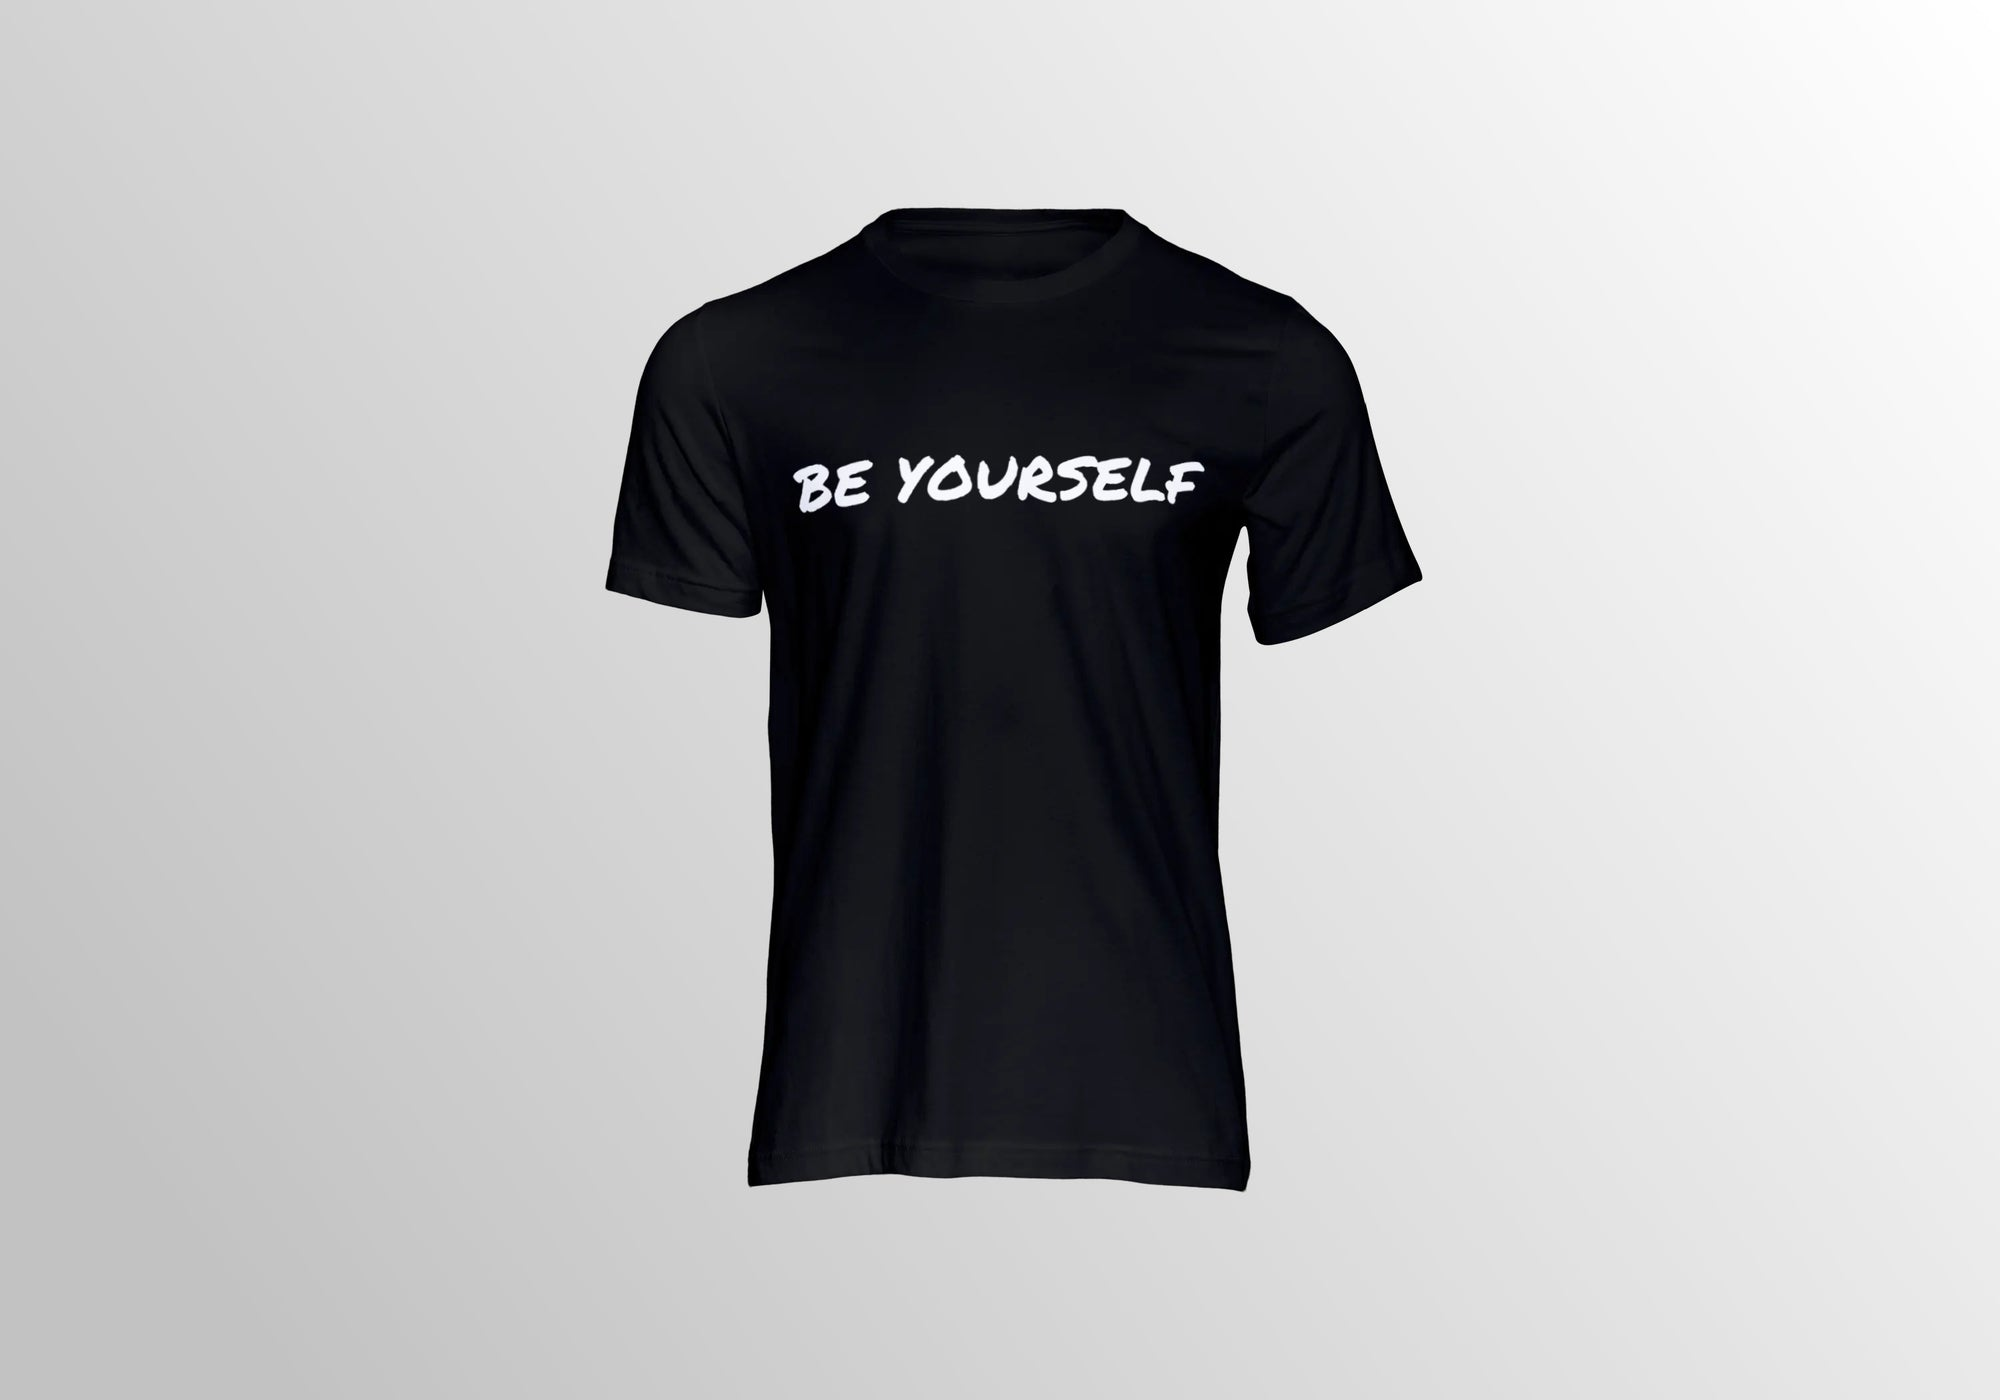 r0ok-clothing-co BE YOURSELF TEE.